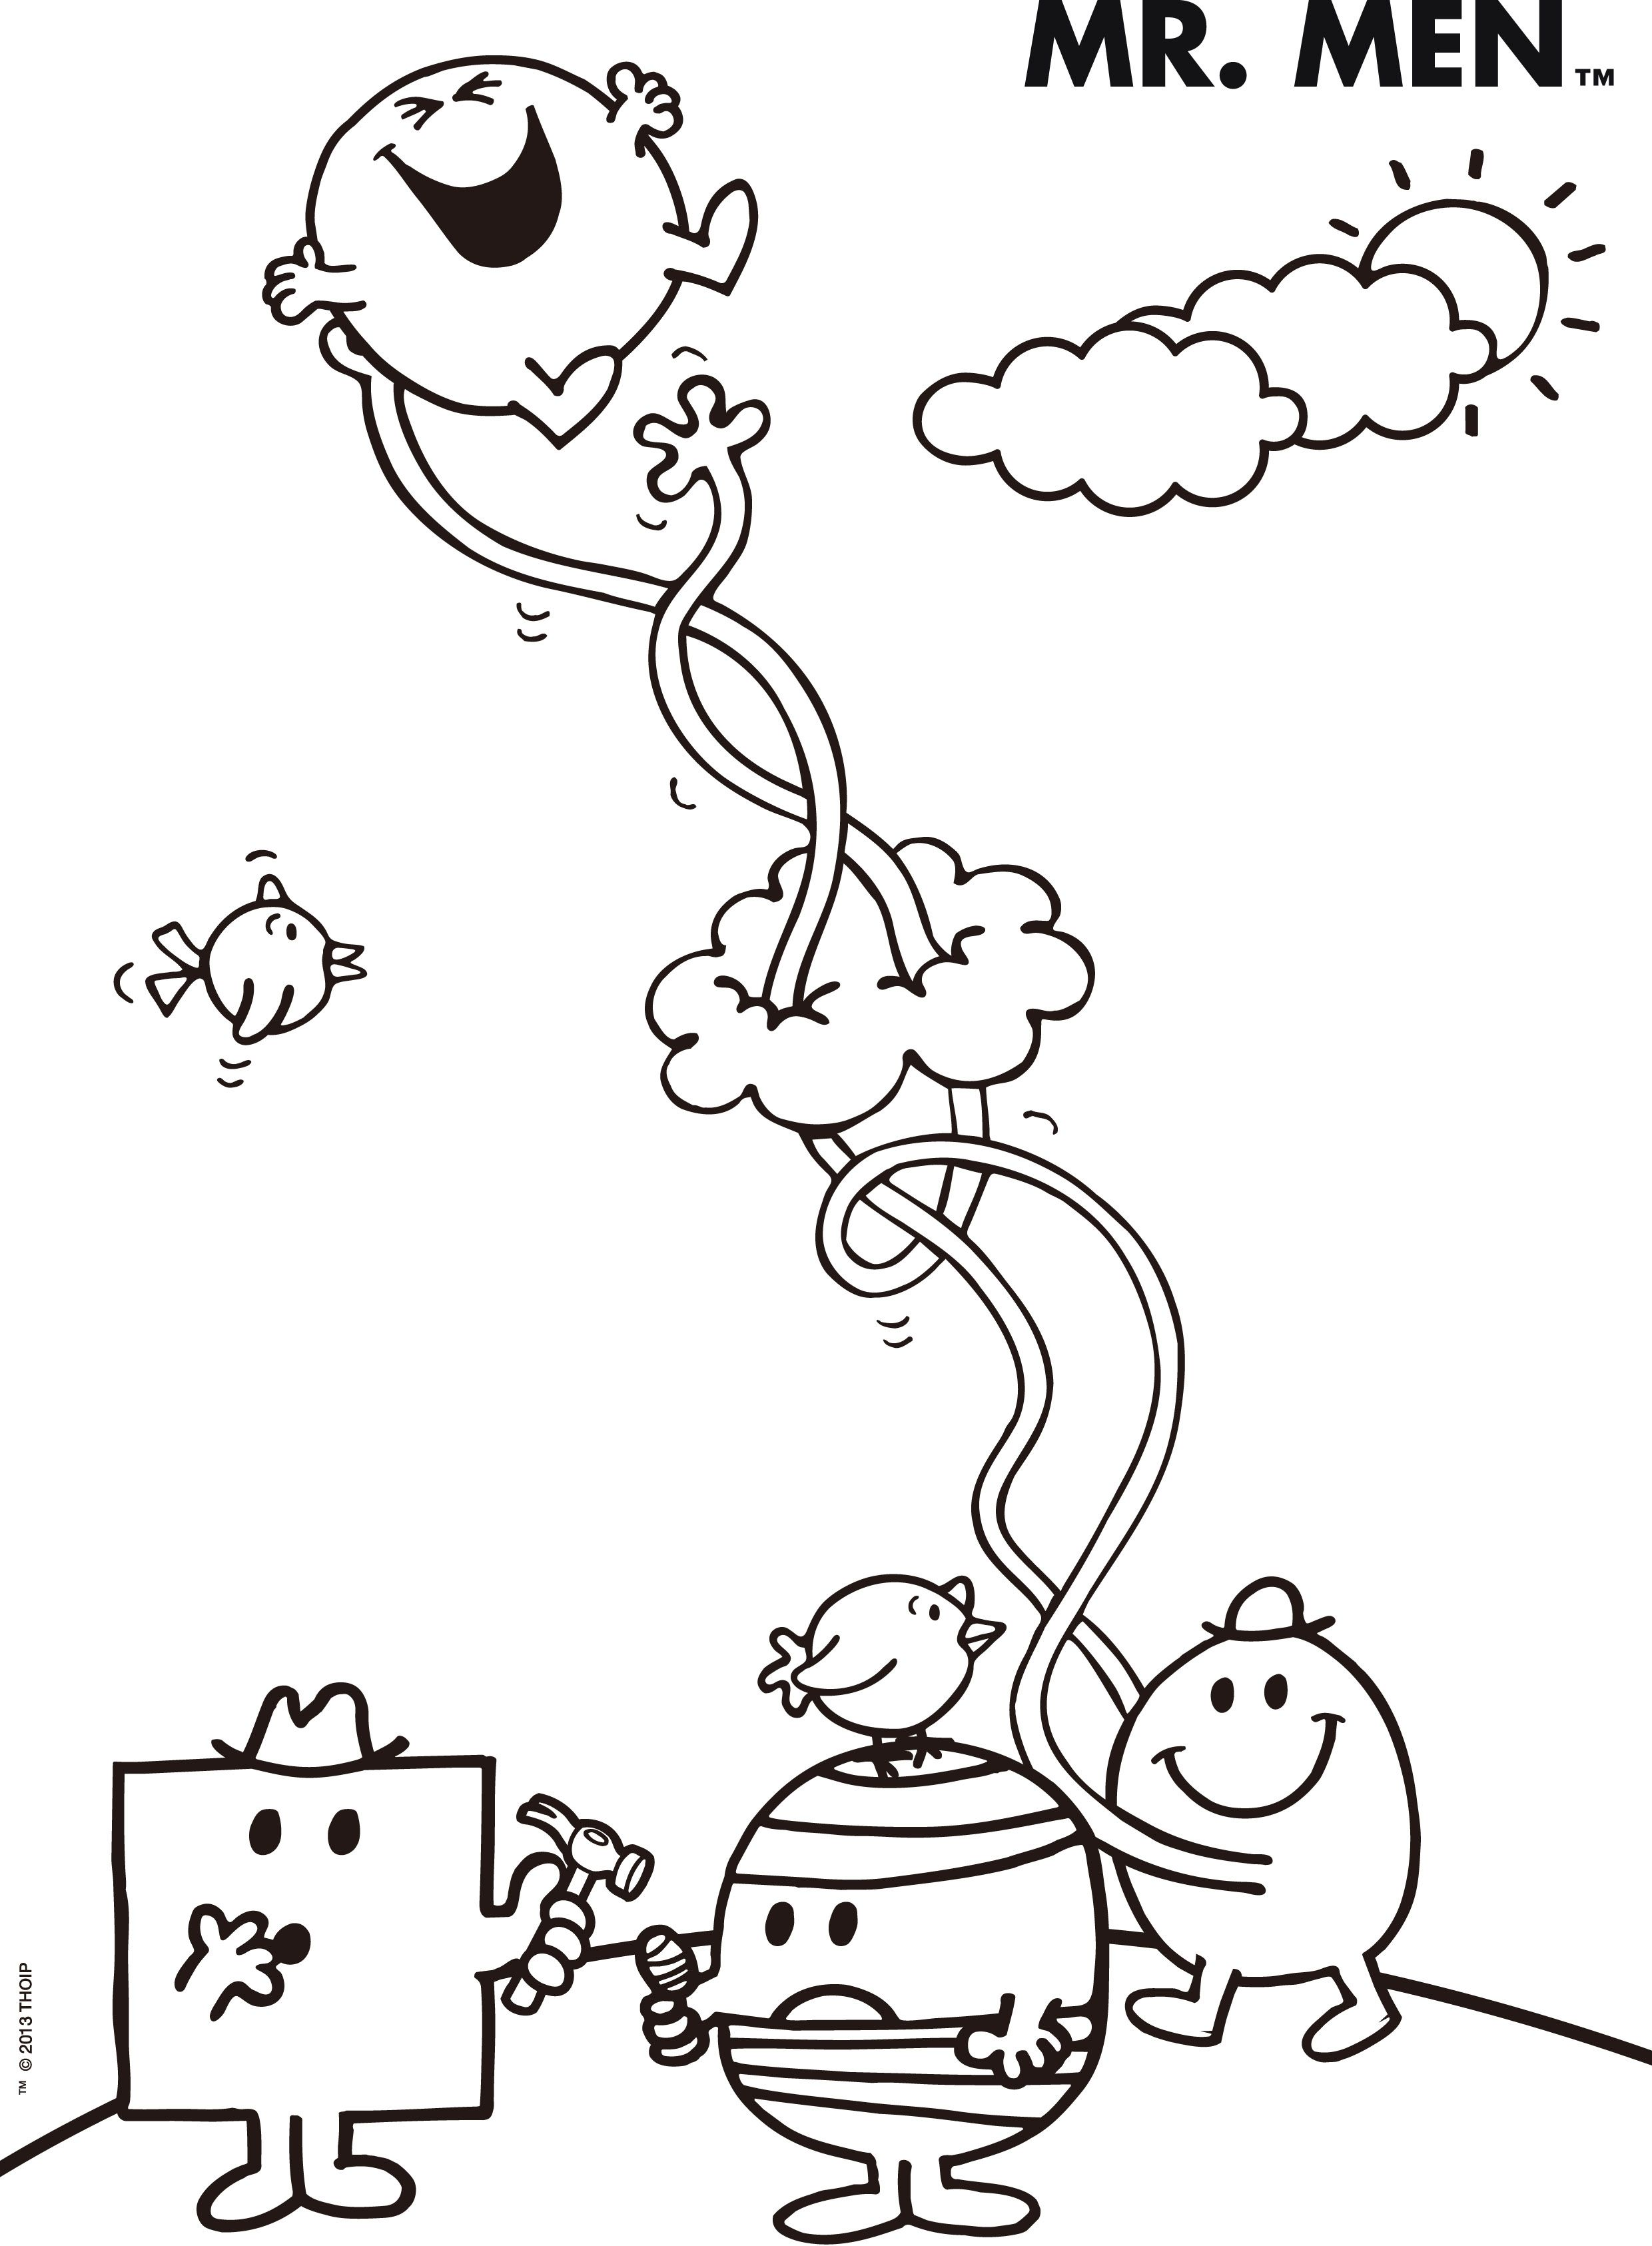 Mr Men Printable Coloring Pages Thousand Of The Best